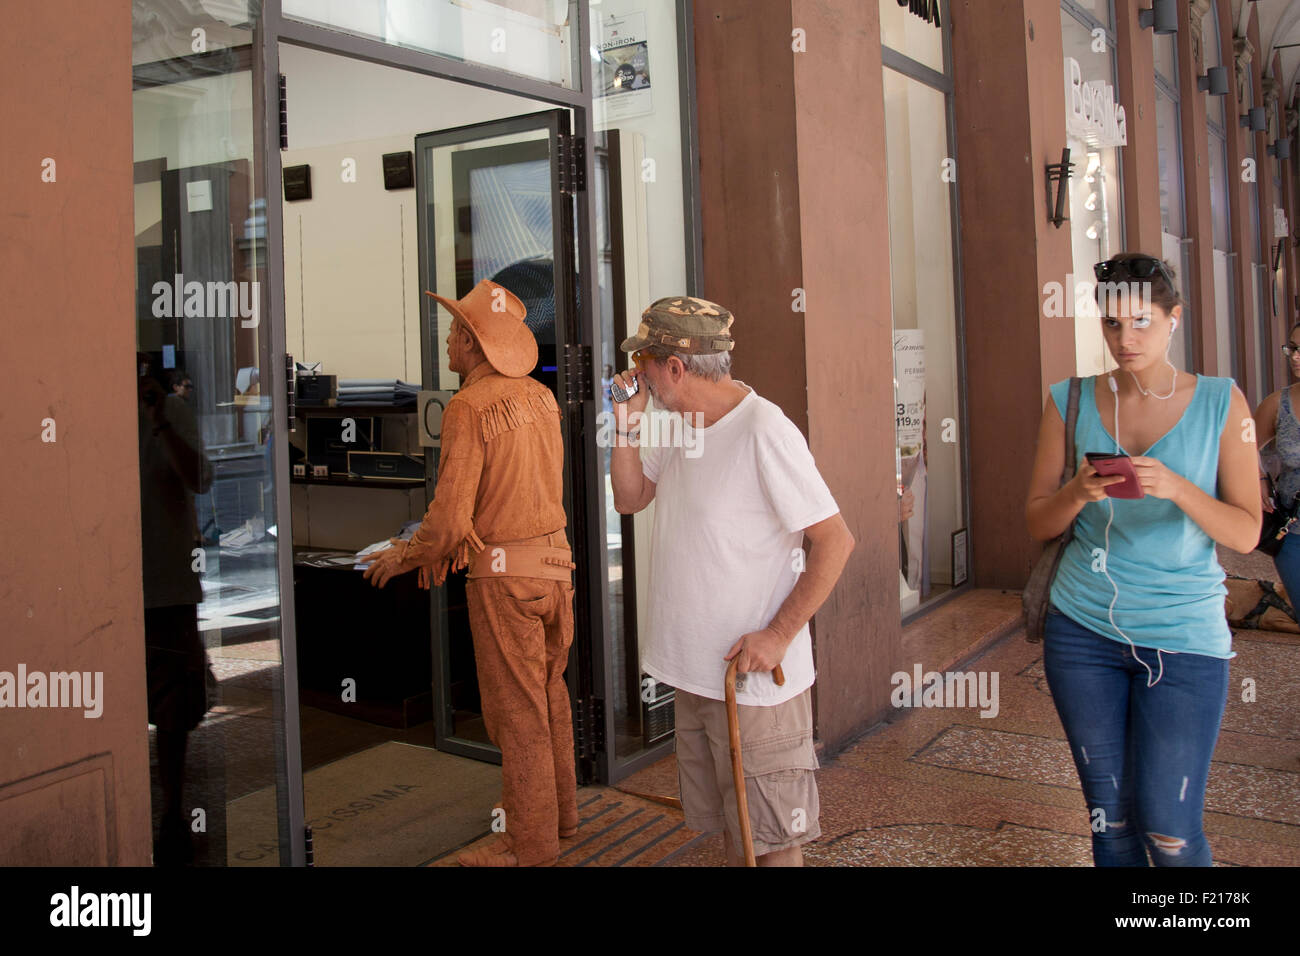 Living statue standing in doorway speaking to shop assistants while a passerby looks puzzled, a shop in Via Indipendenza - Stock Image